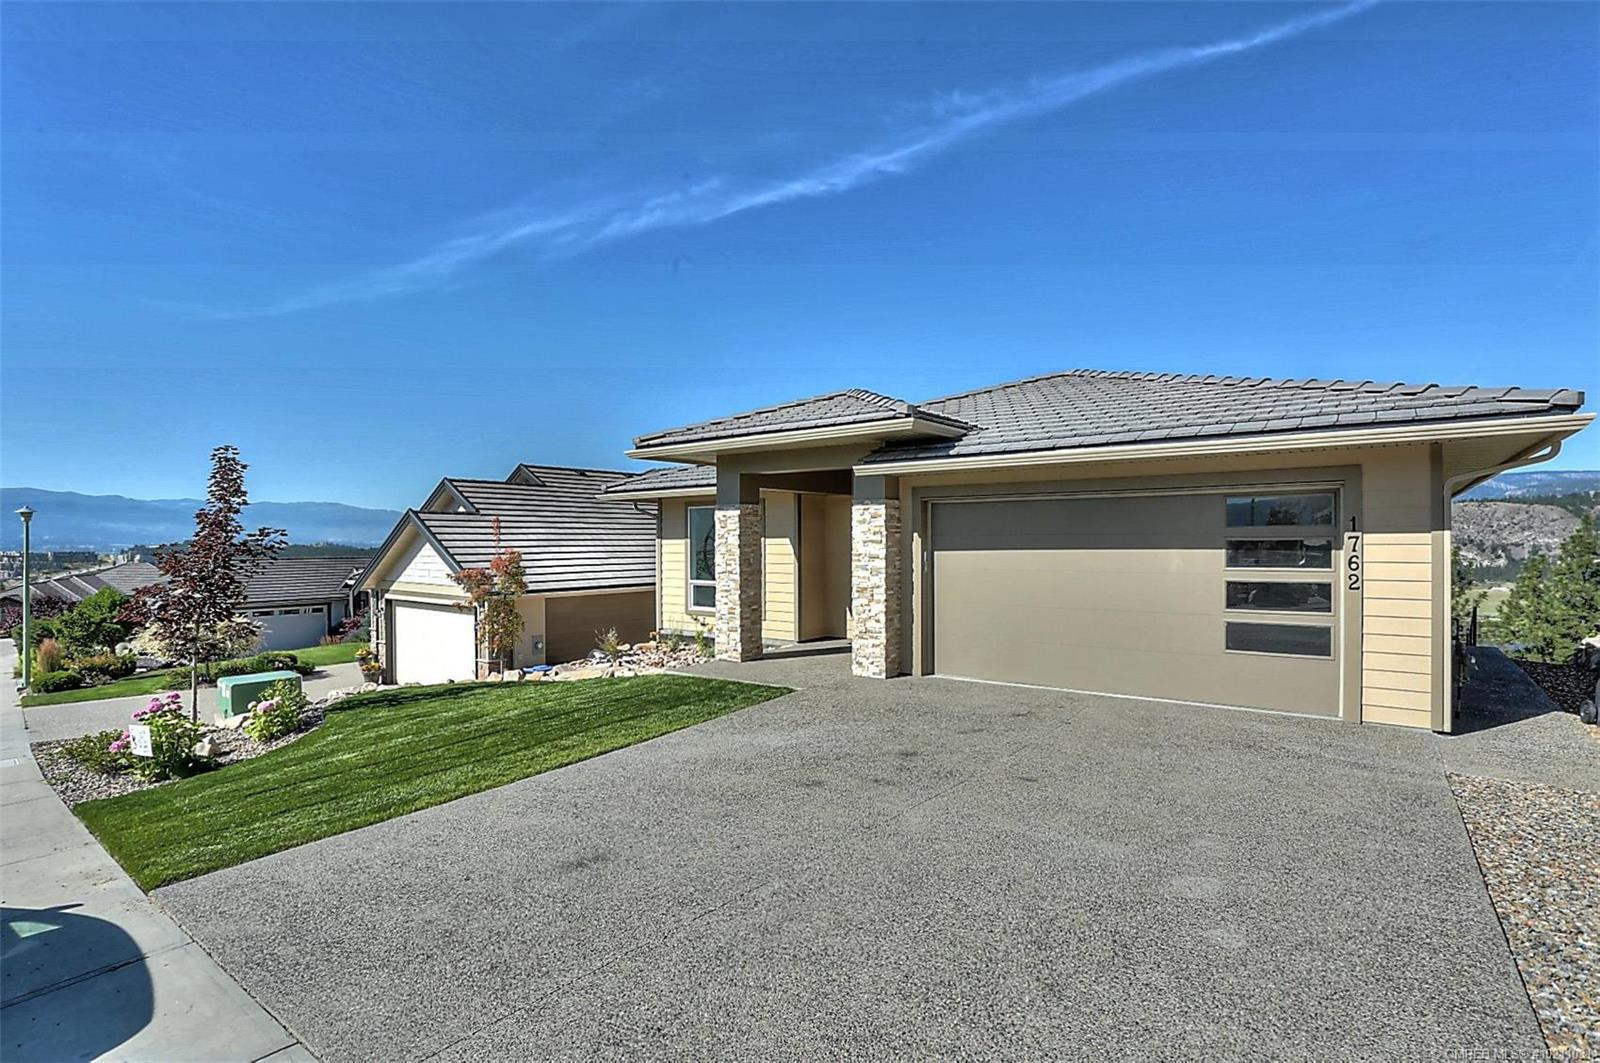 Removed: 1762 Capistrano Peaks Crescent, Kelowna, BC - Removed on 2020-08-19 23:24:45